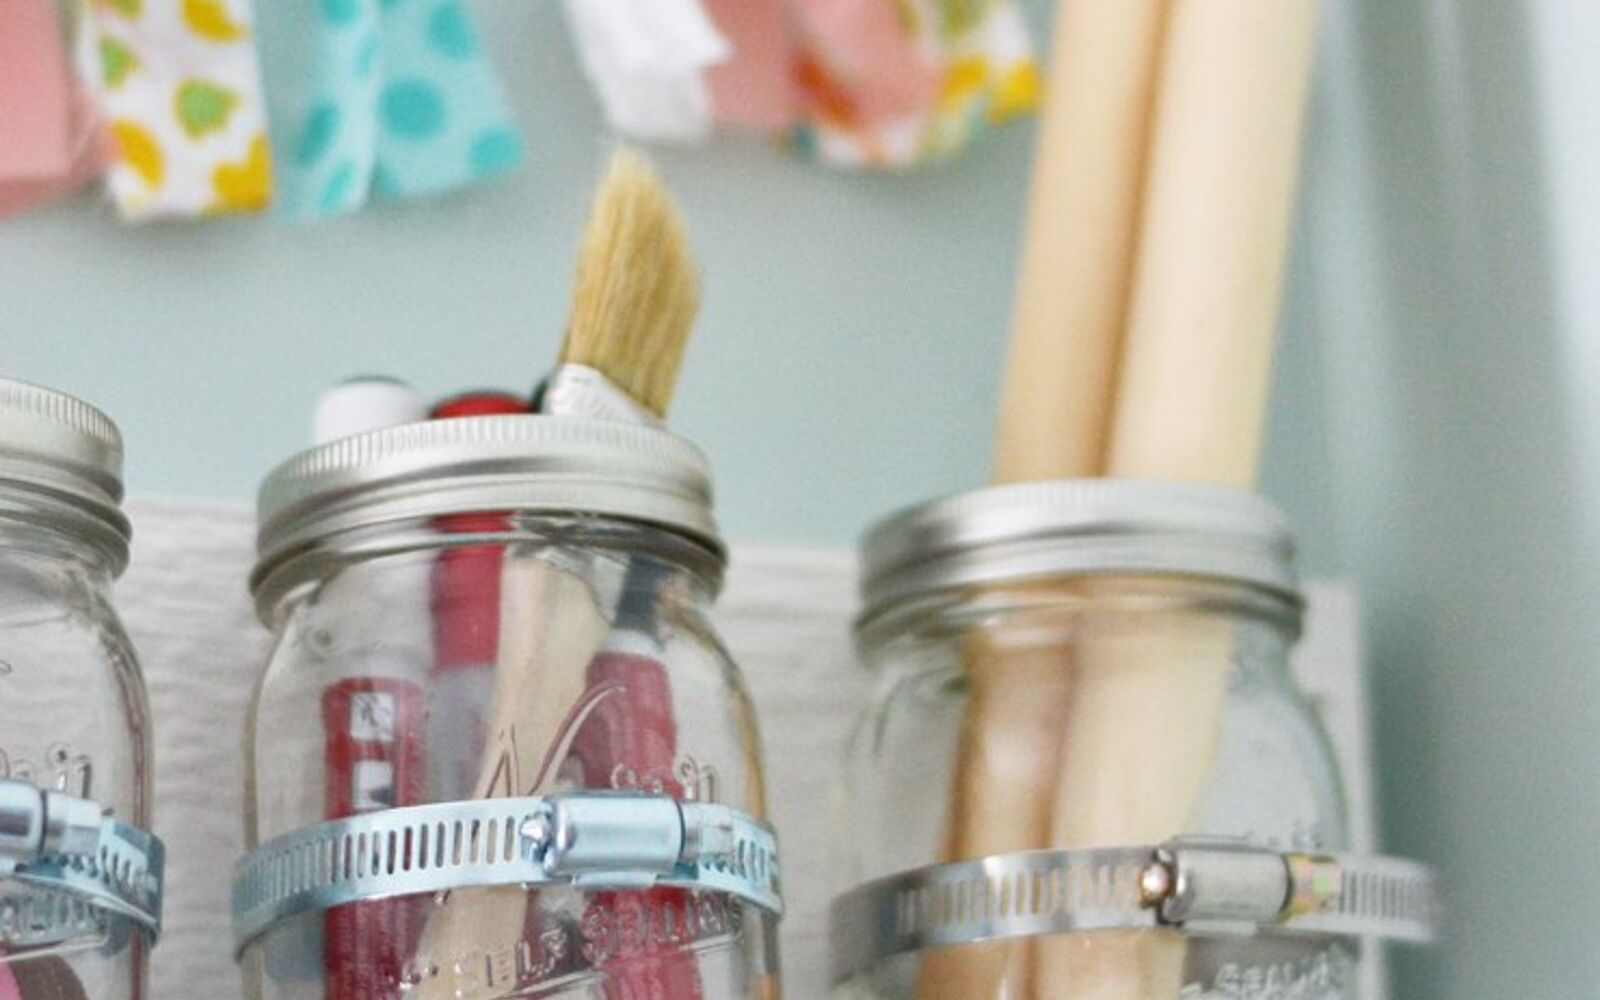 s post, Clean Up Your Craft Room With Mason Jars